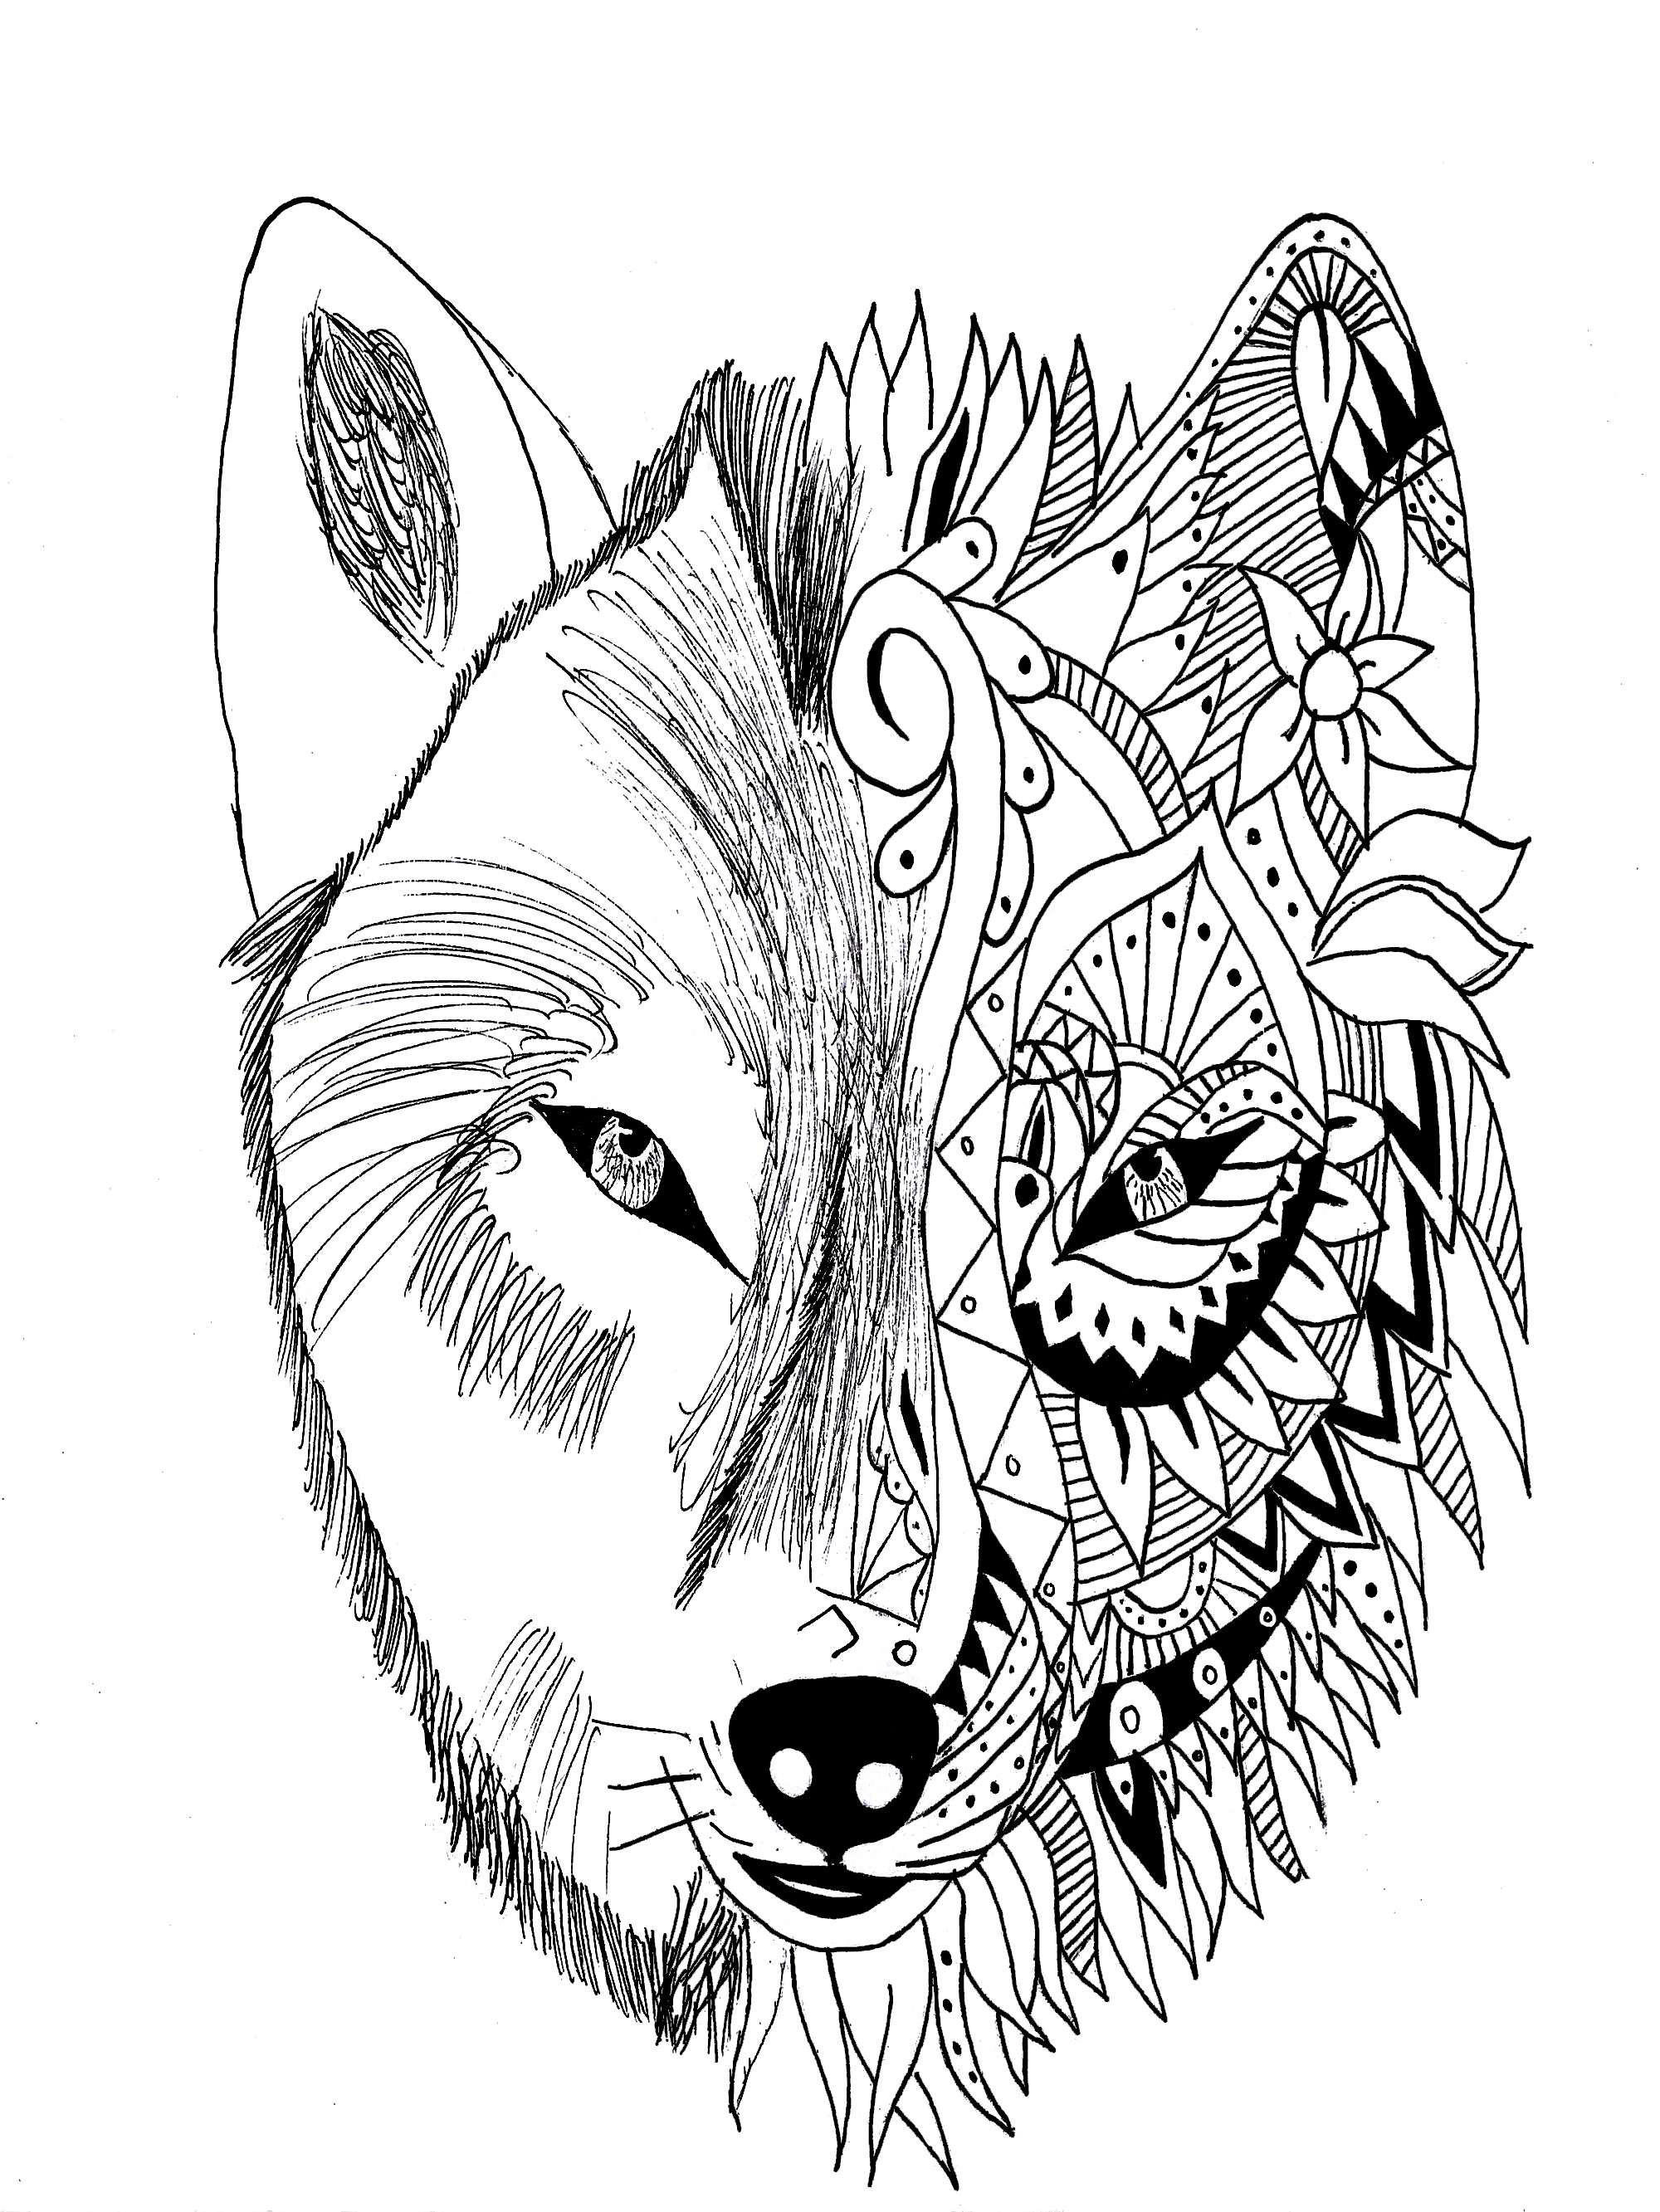 Coloring Page Tattoo Wolf Krissy In Two Parts Realistic And Zentangle Style